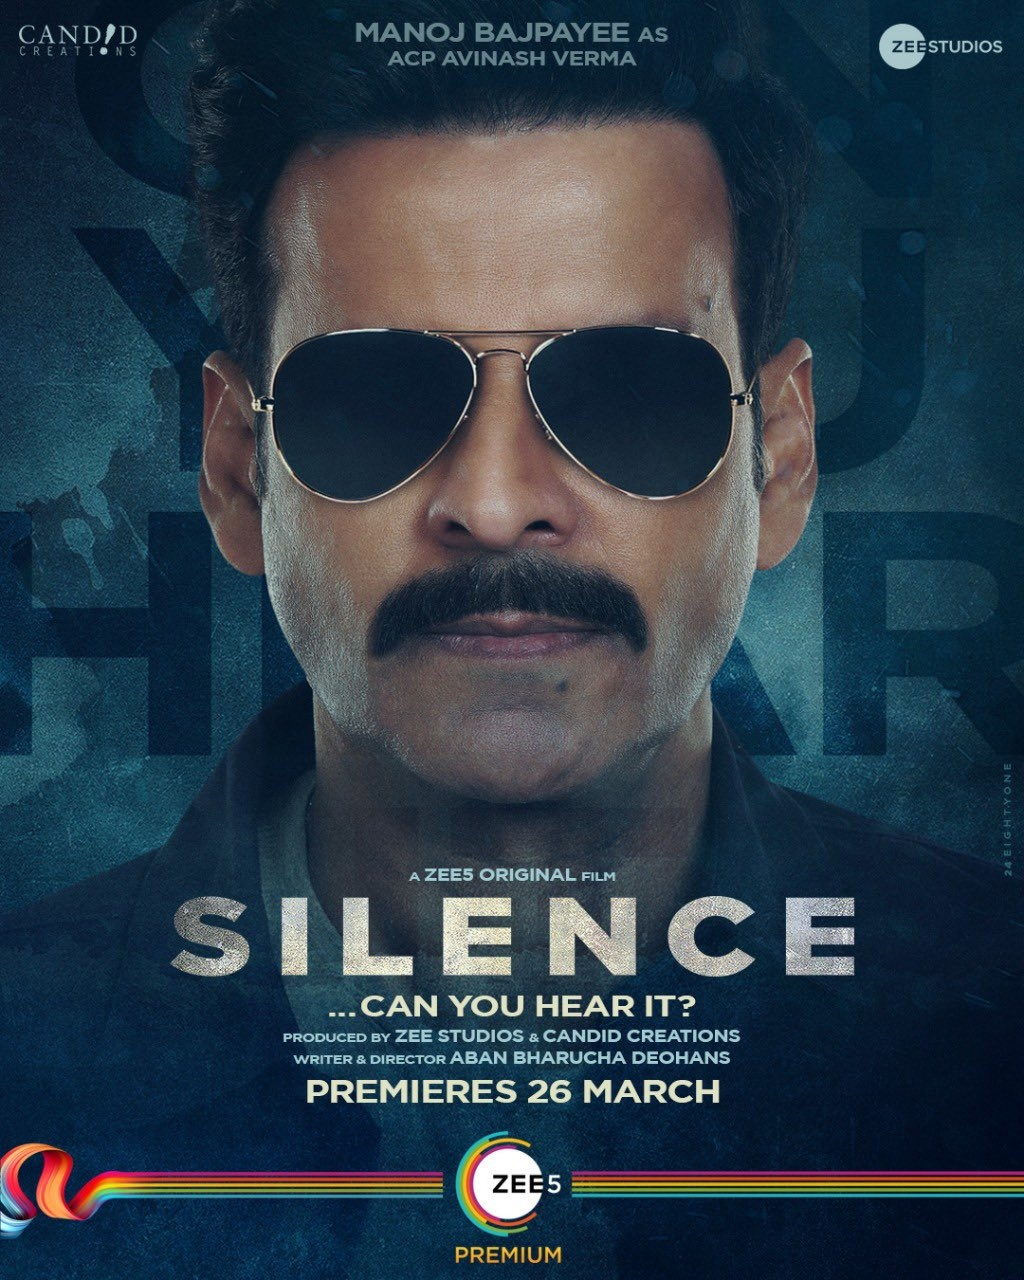 Manoj Bajpayee-starrer 'Silence' set for OTT release on March 26